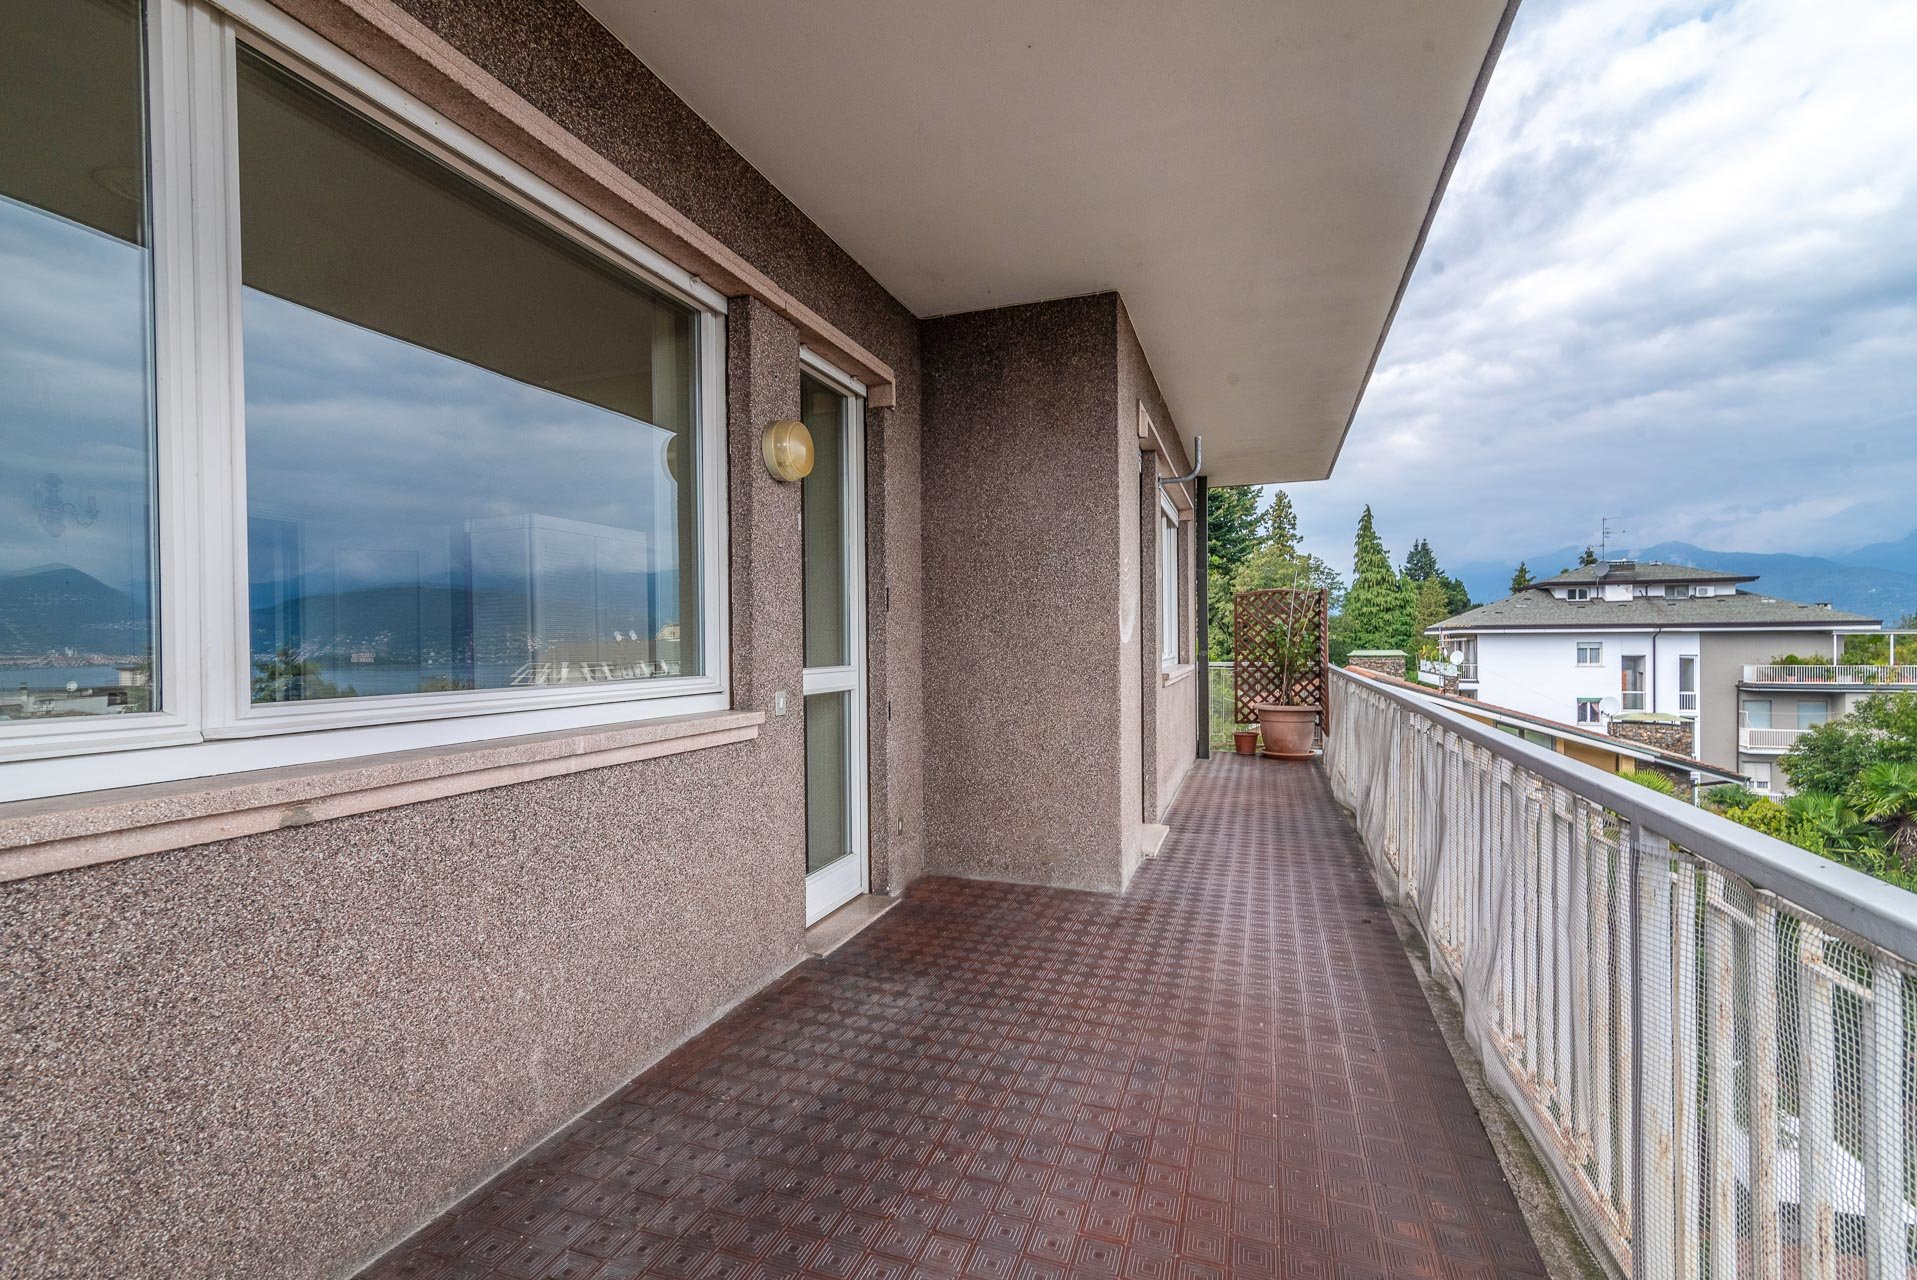 Apartment for sale in the center of Stresa - balcony